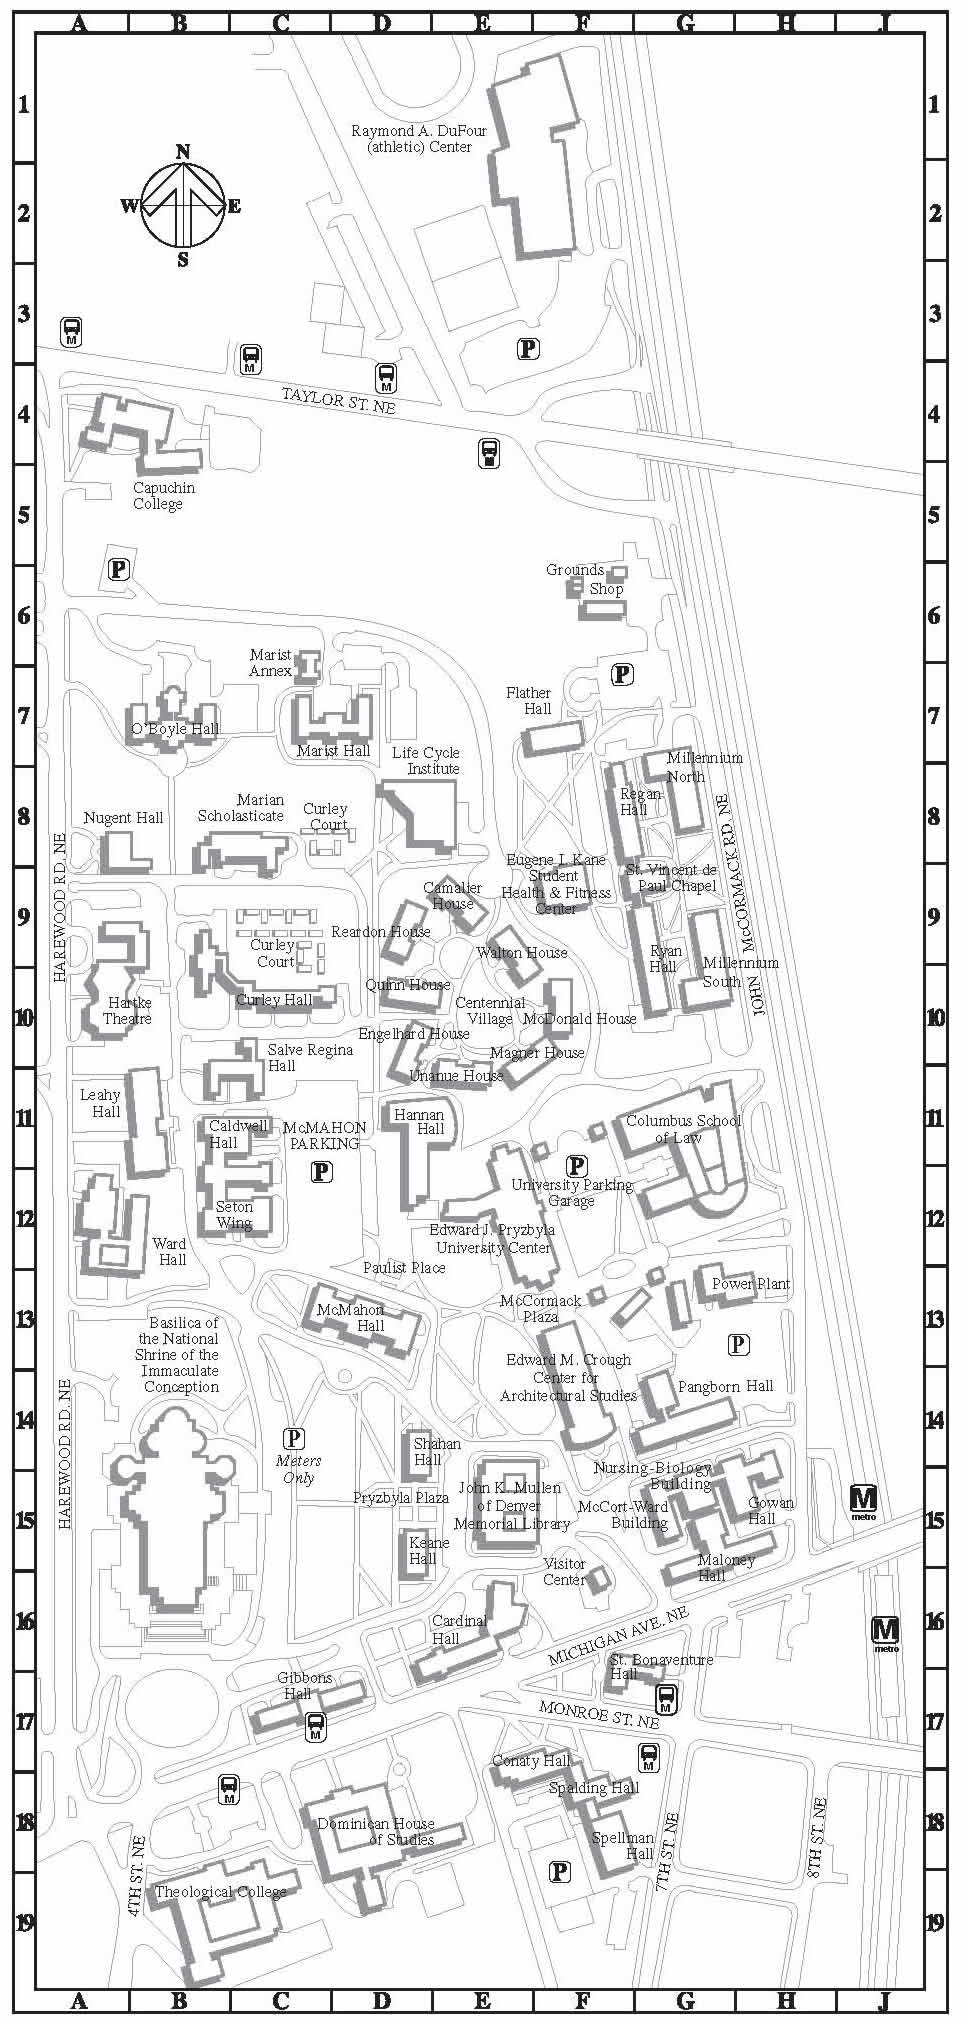 Catholic University of America Campus Map   620 Michigan Ave NE